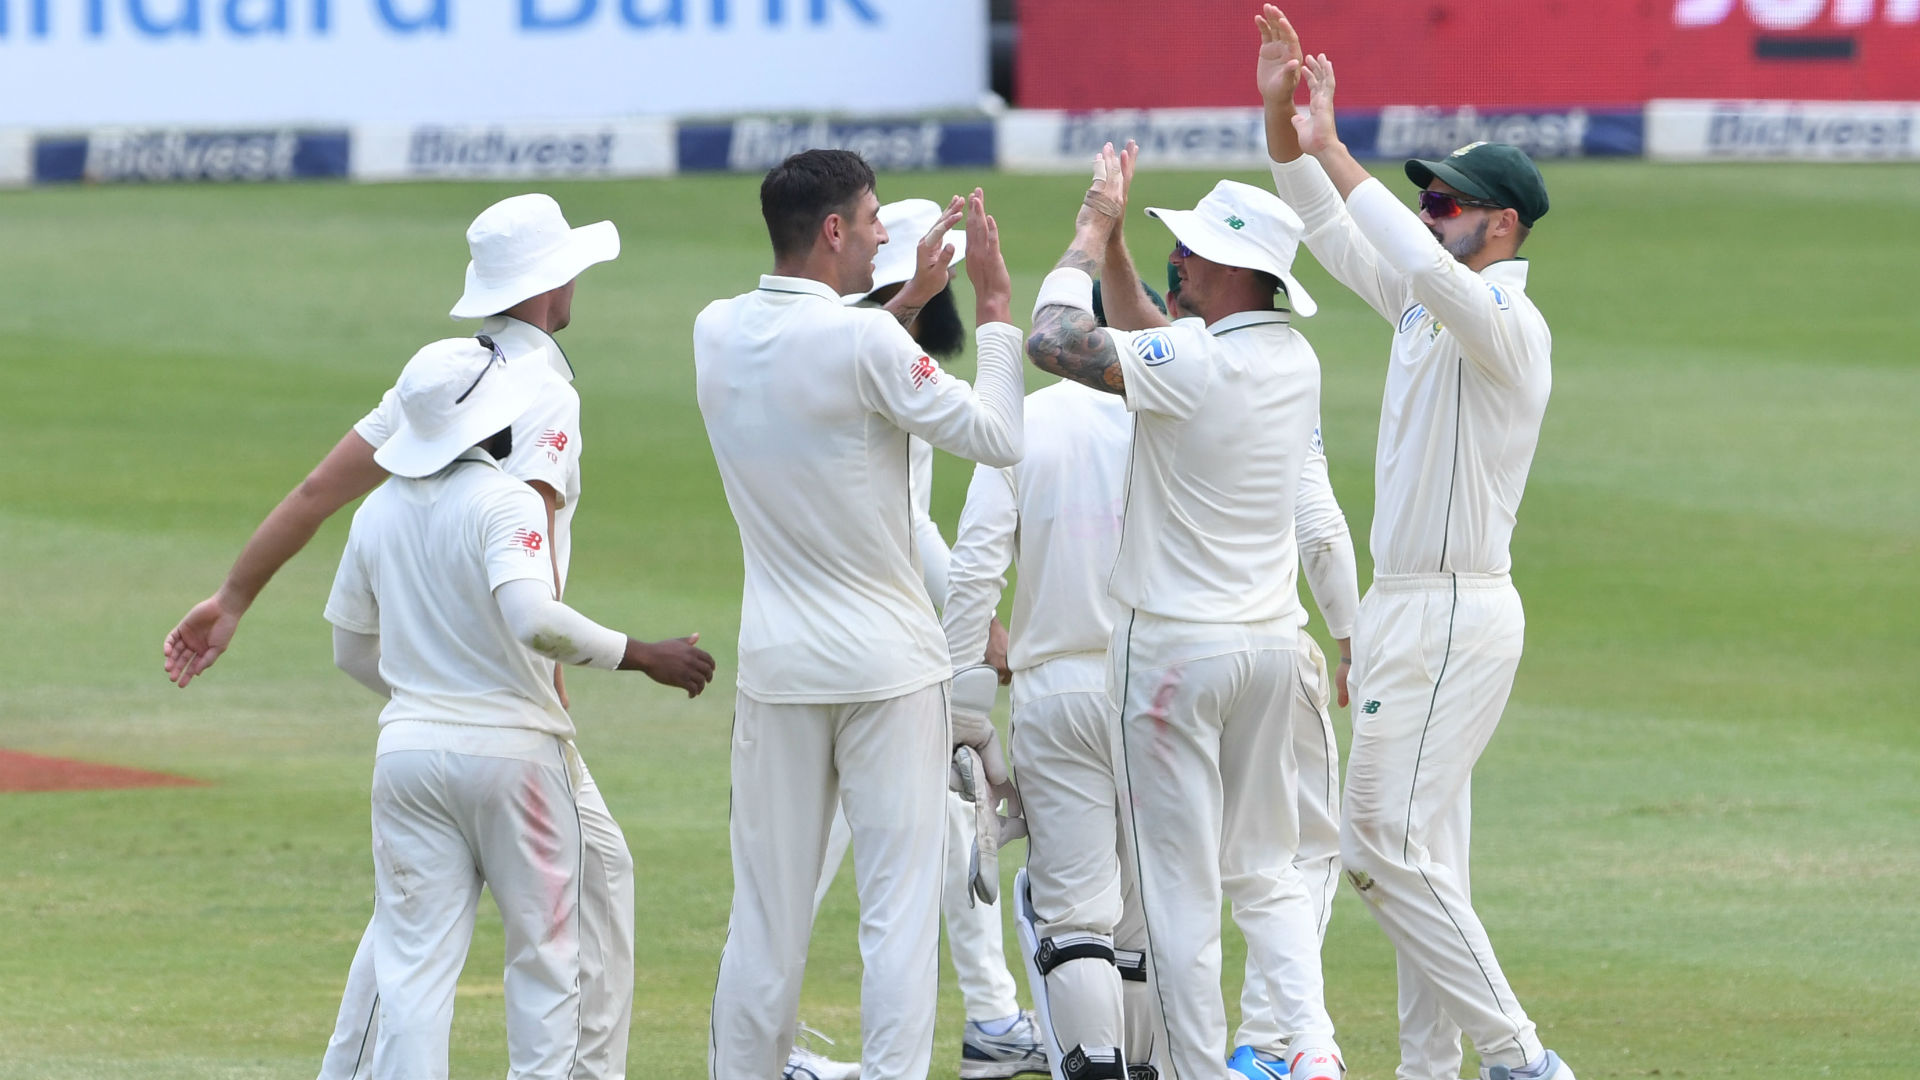 Duanne Olivier and Hashim Amla helped South Africa keep Pakistan under control as they built a 212-run lead over Pakistan.